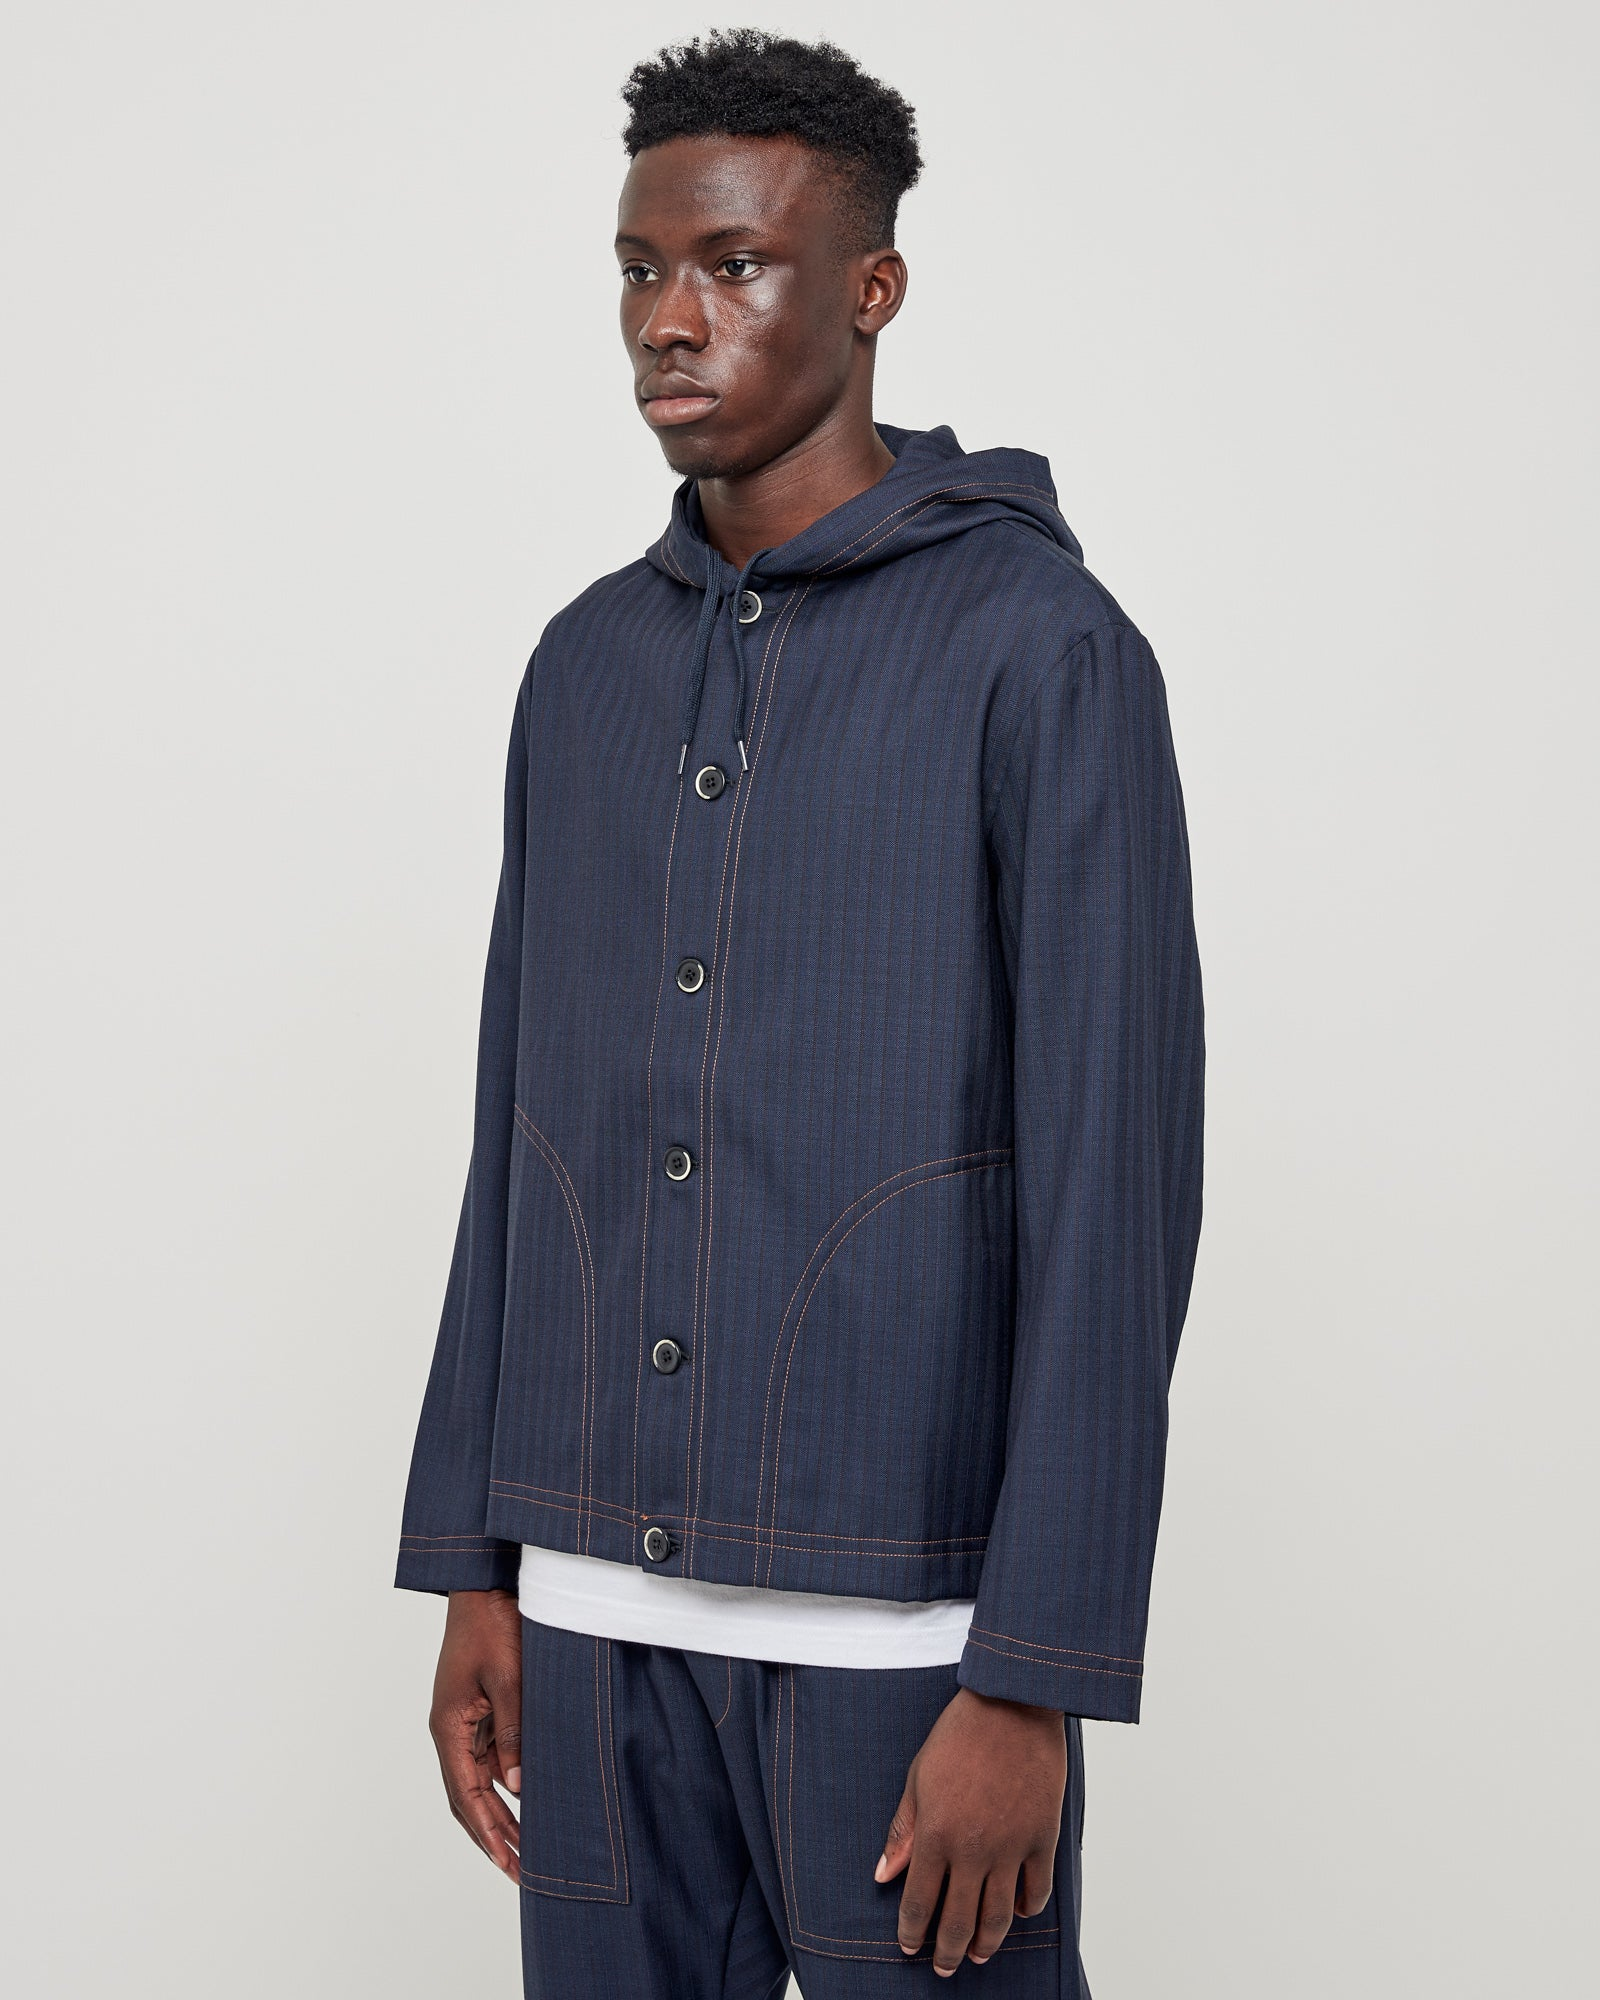 Archivio 1993 RG Coat Caroman in Navy